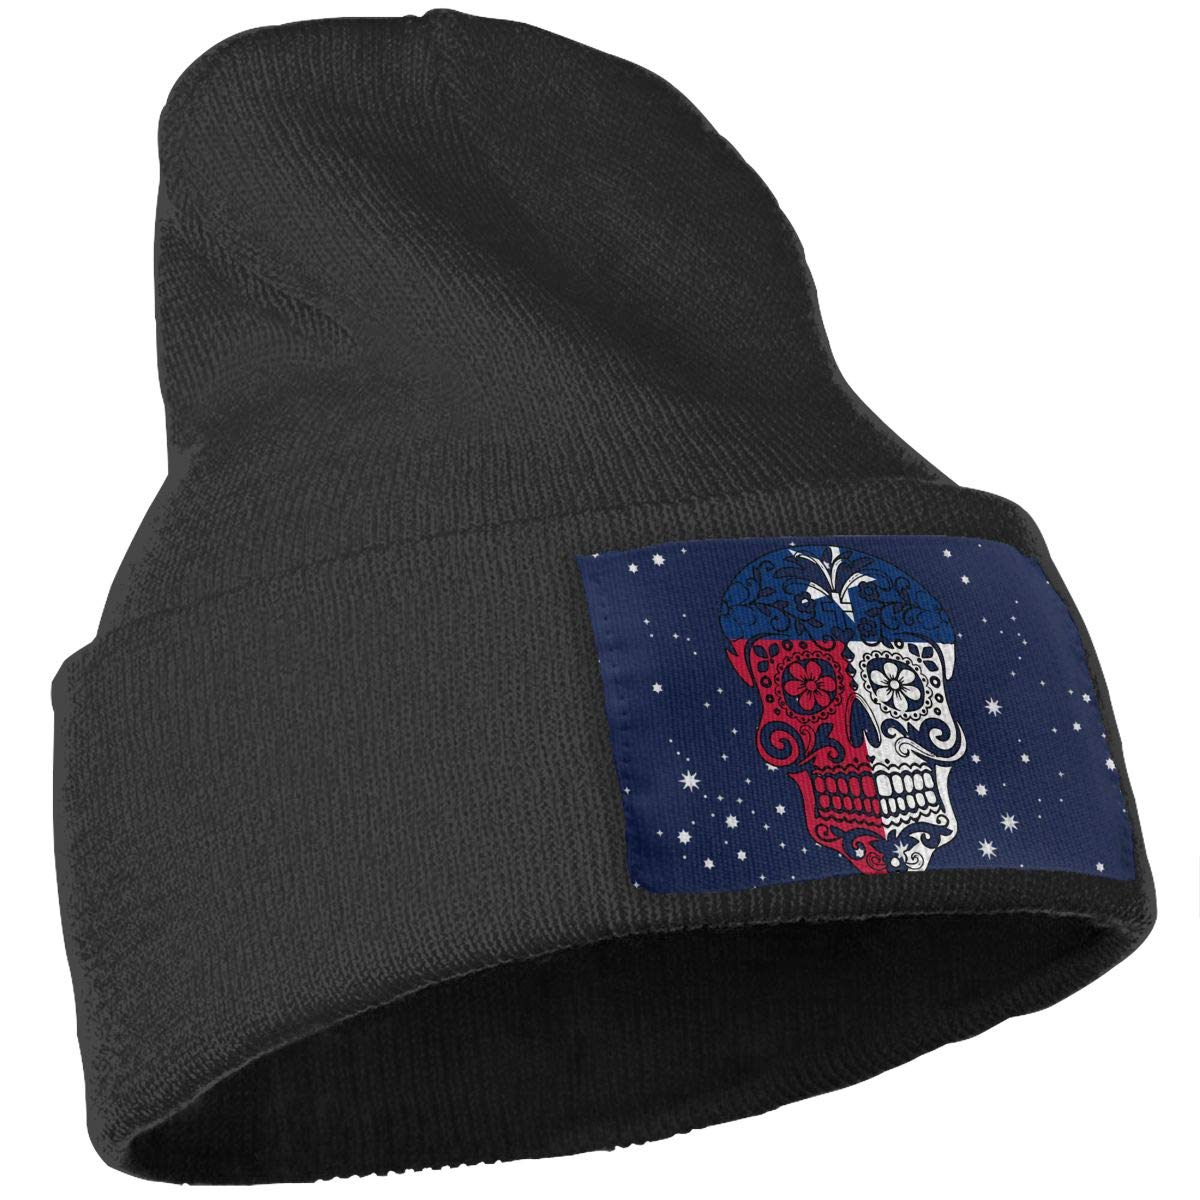 Sugar Skulls Texas Flag Ski Cap Men Women Knitting Hats Stretchy /& Soft Beanie